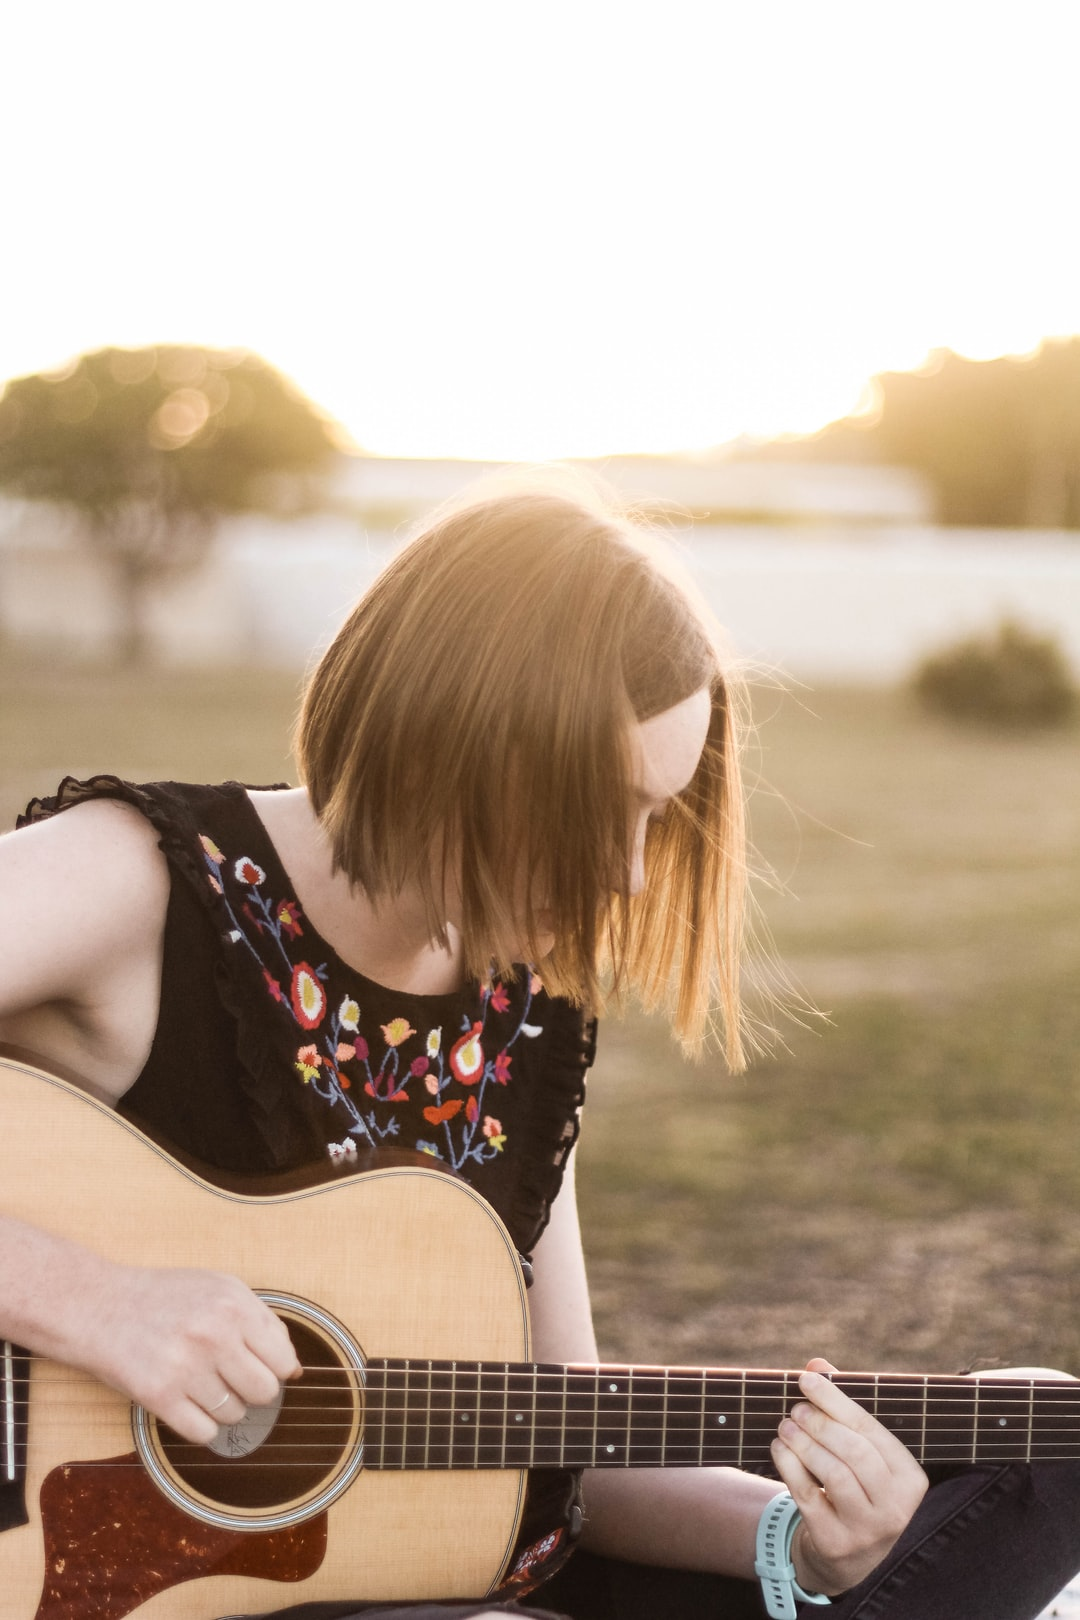 The Girl with the Guitar [1]